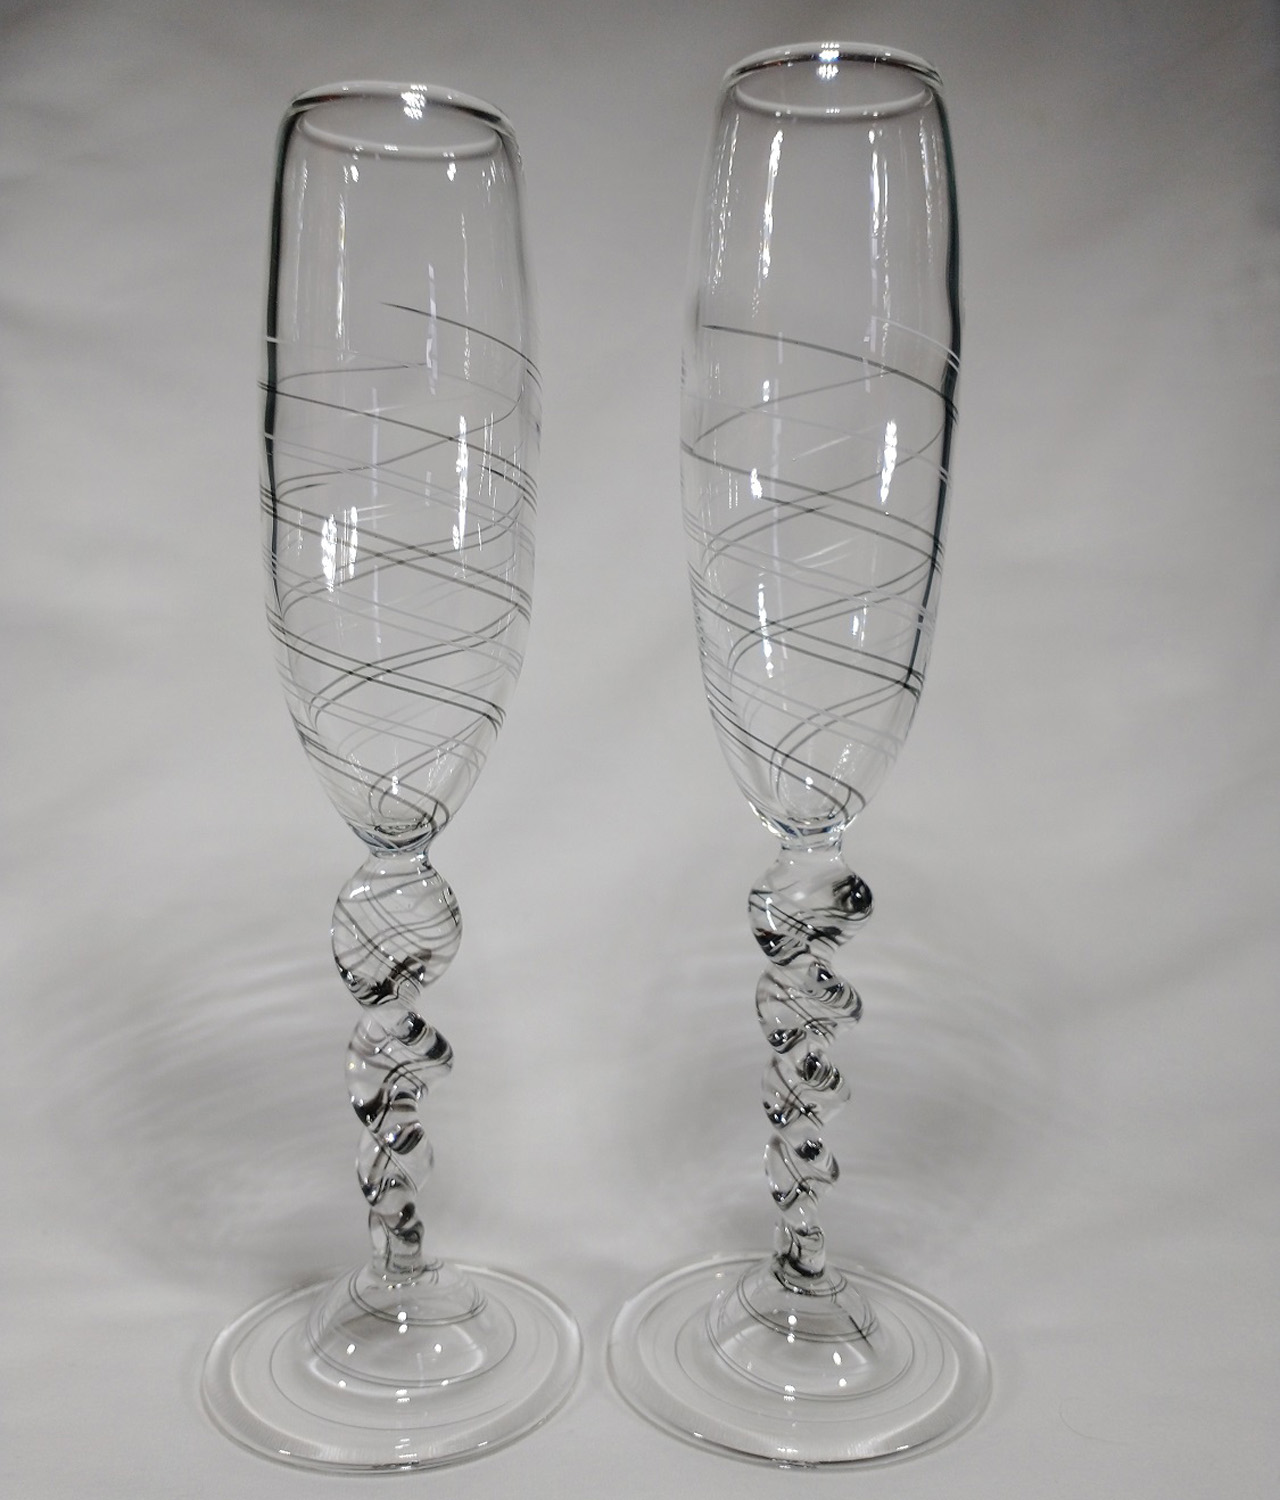 Black & White Champagne Flutes - Greg Losco